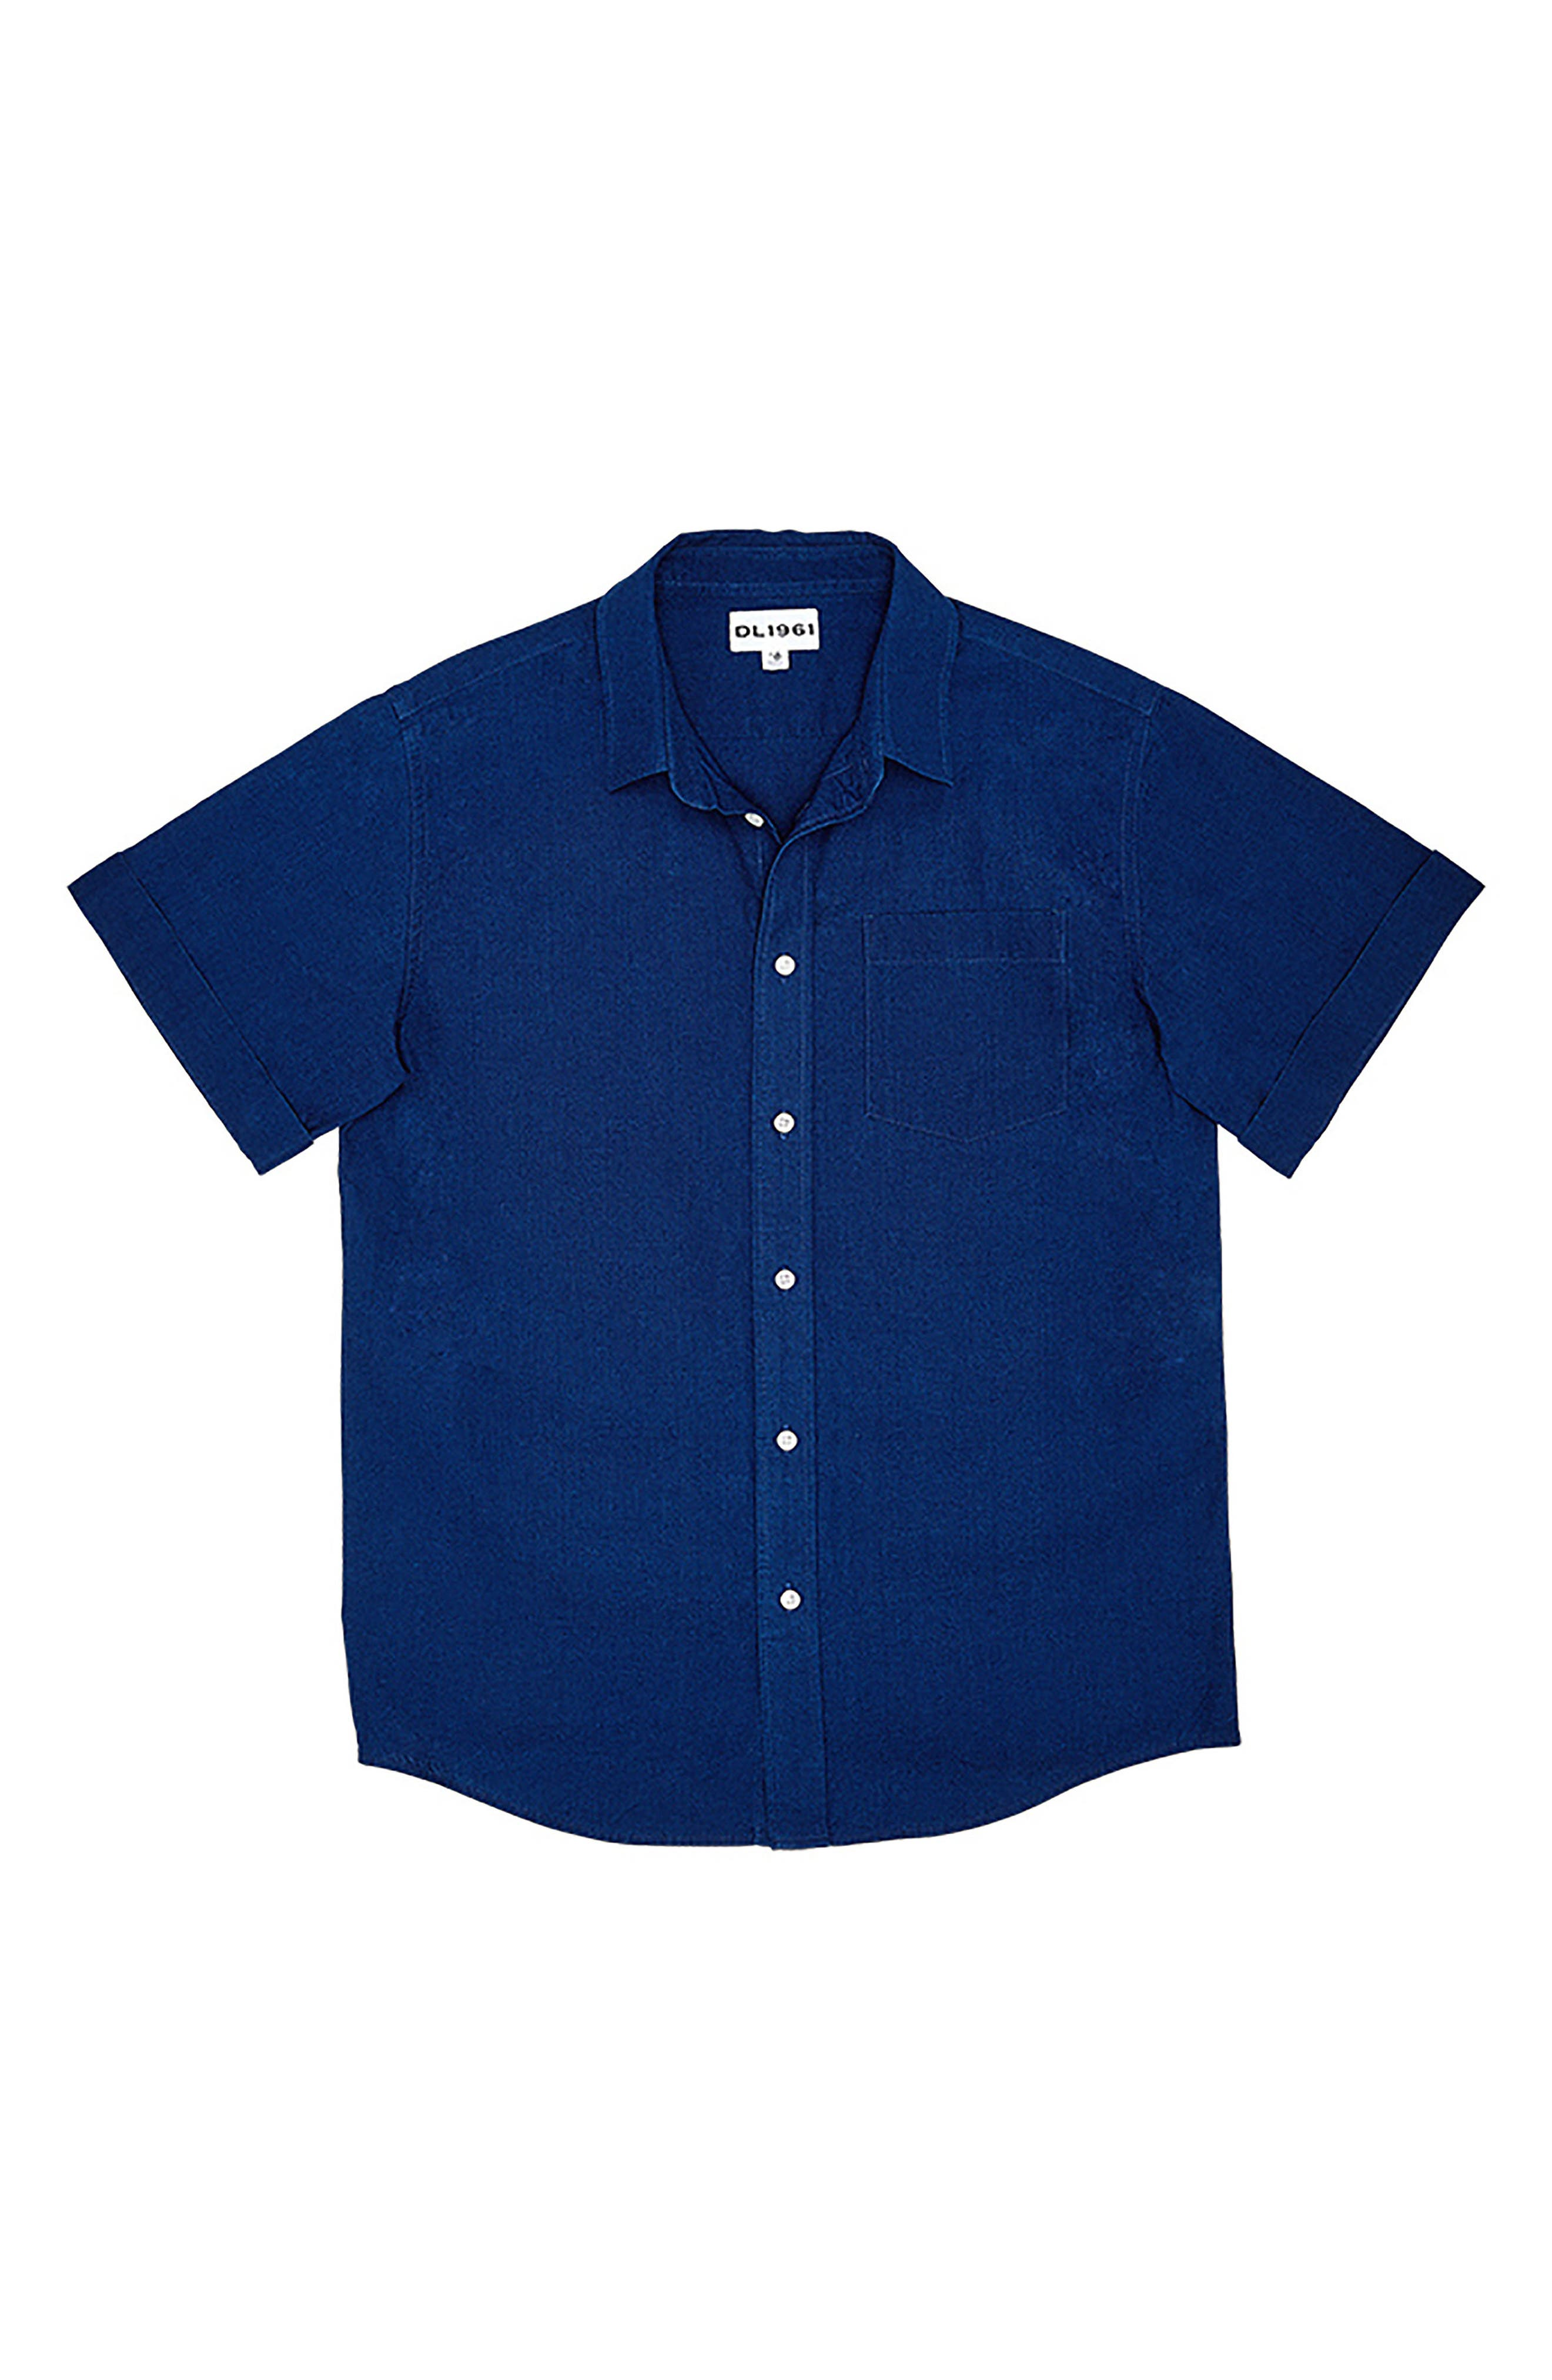 DL 1961 Ash Woven Shirt,                             Main thumbnail 1, color,                             Indigo Plaid